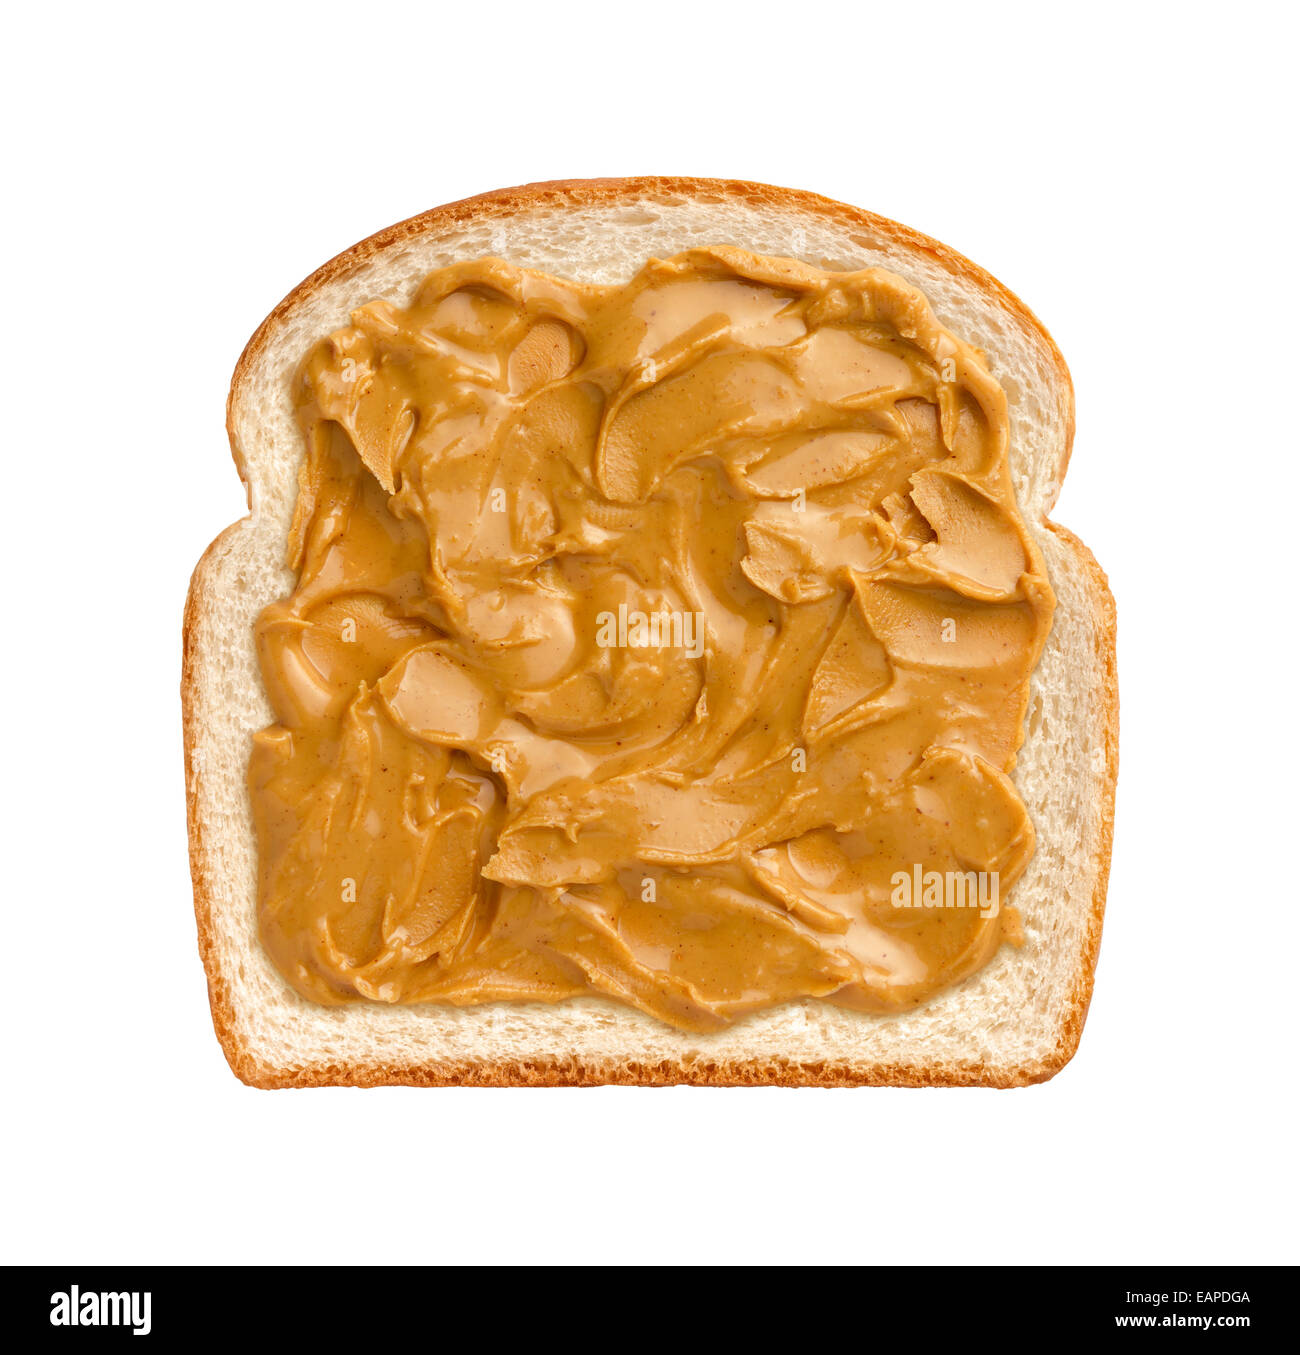 Aerial view of swirling peanut butter on a  slice of white bread. The subject is isolated on a white background. - Stock Image